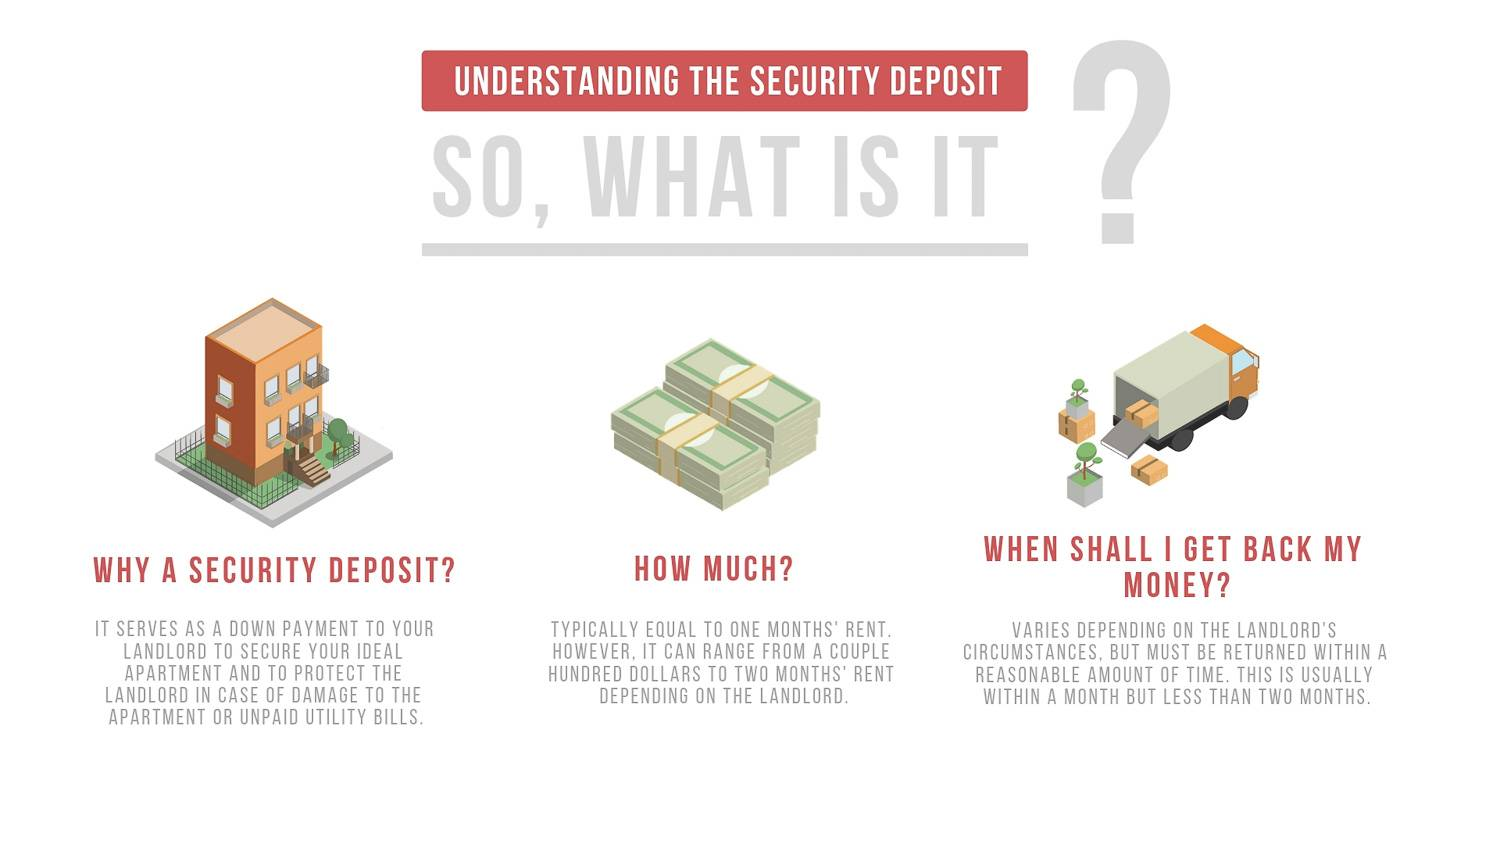 New York Habitat infographic describing important things to know about security deposits, including why one is needed, how much it costs, and when it is returned.